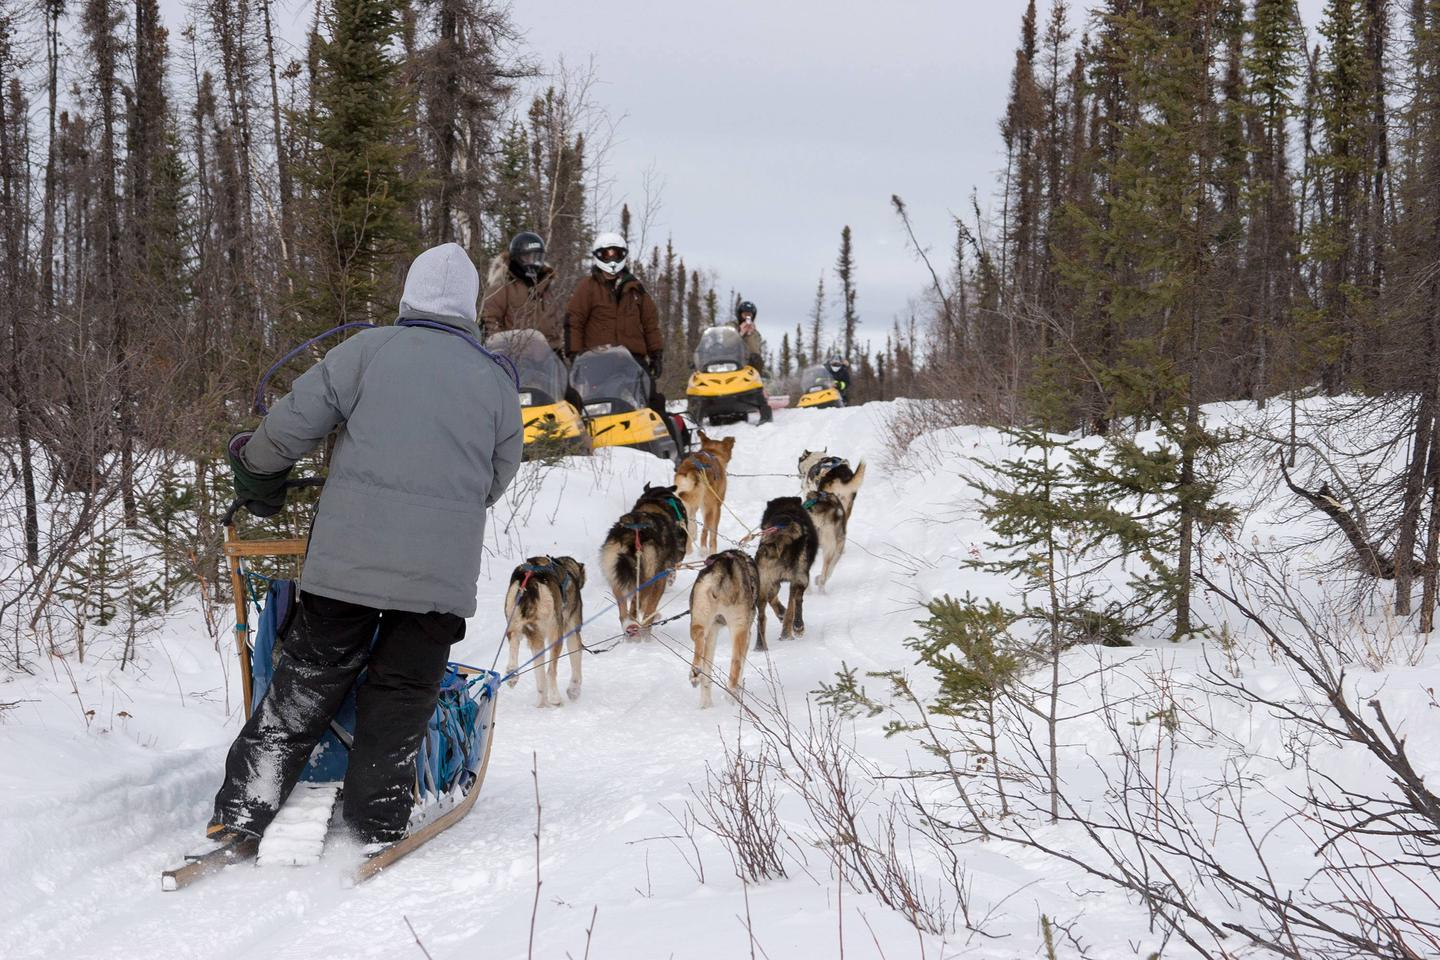 A musher and her dog team pass snowmobilers on a trail.White Mountains trails are multi-use, and visitors have a long history of sharing the trails with other users.